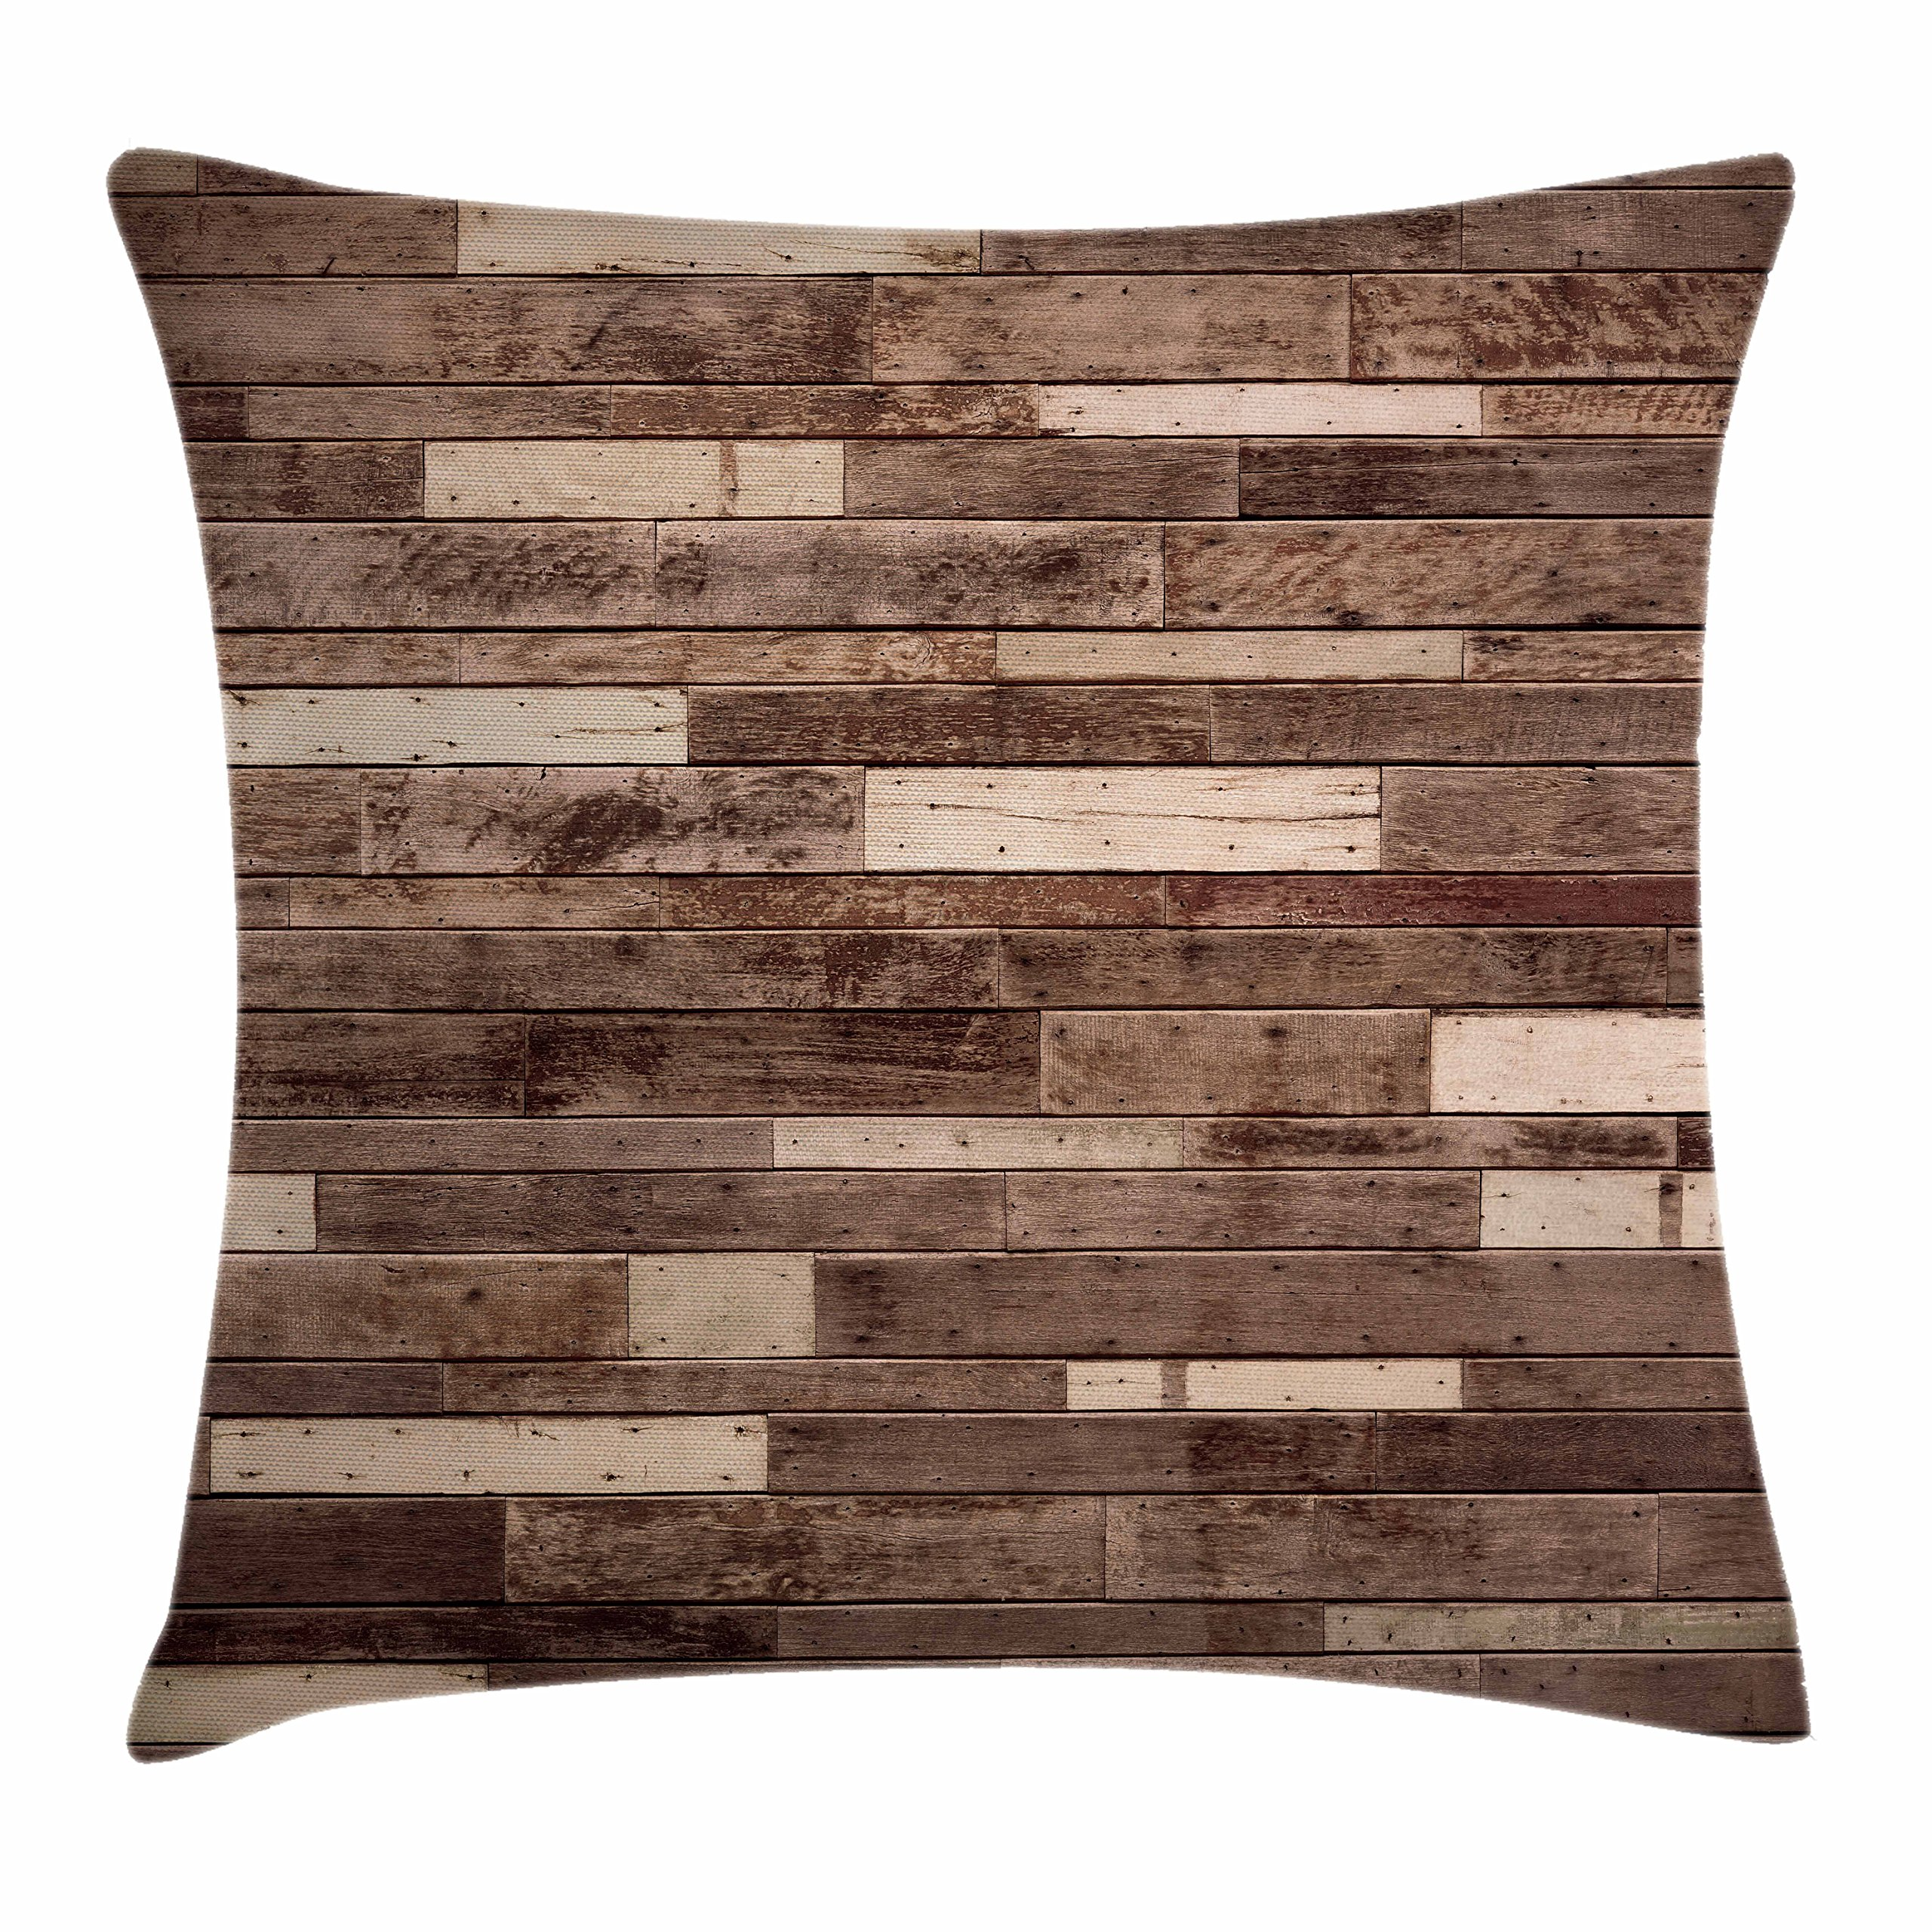 Ambesonne Wooden Throw Pillow Cushion Cover, Wall Floor Textured Planks Panels Picture Art Print Grain Cottage Lodge Hardwood Pattern, Decorative Square Accent Pillow Case, 40 X 40 inches, Brown